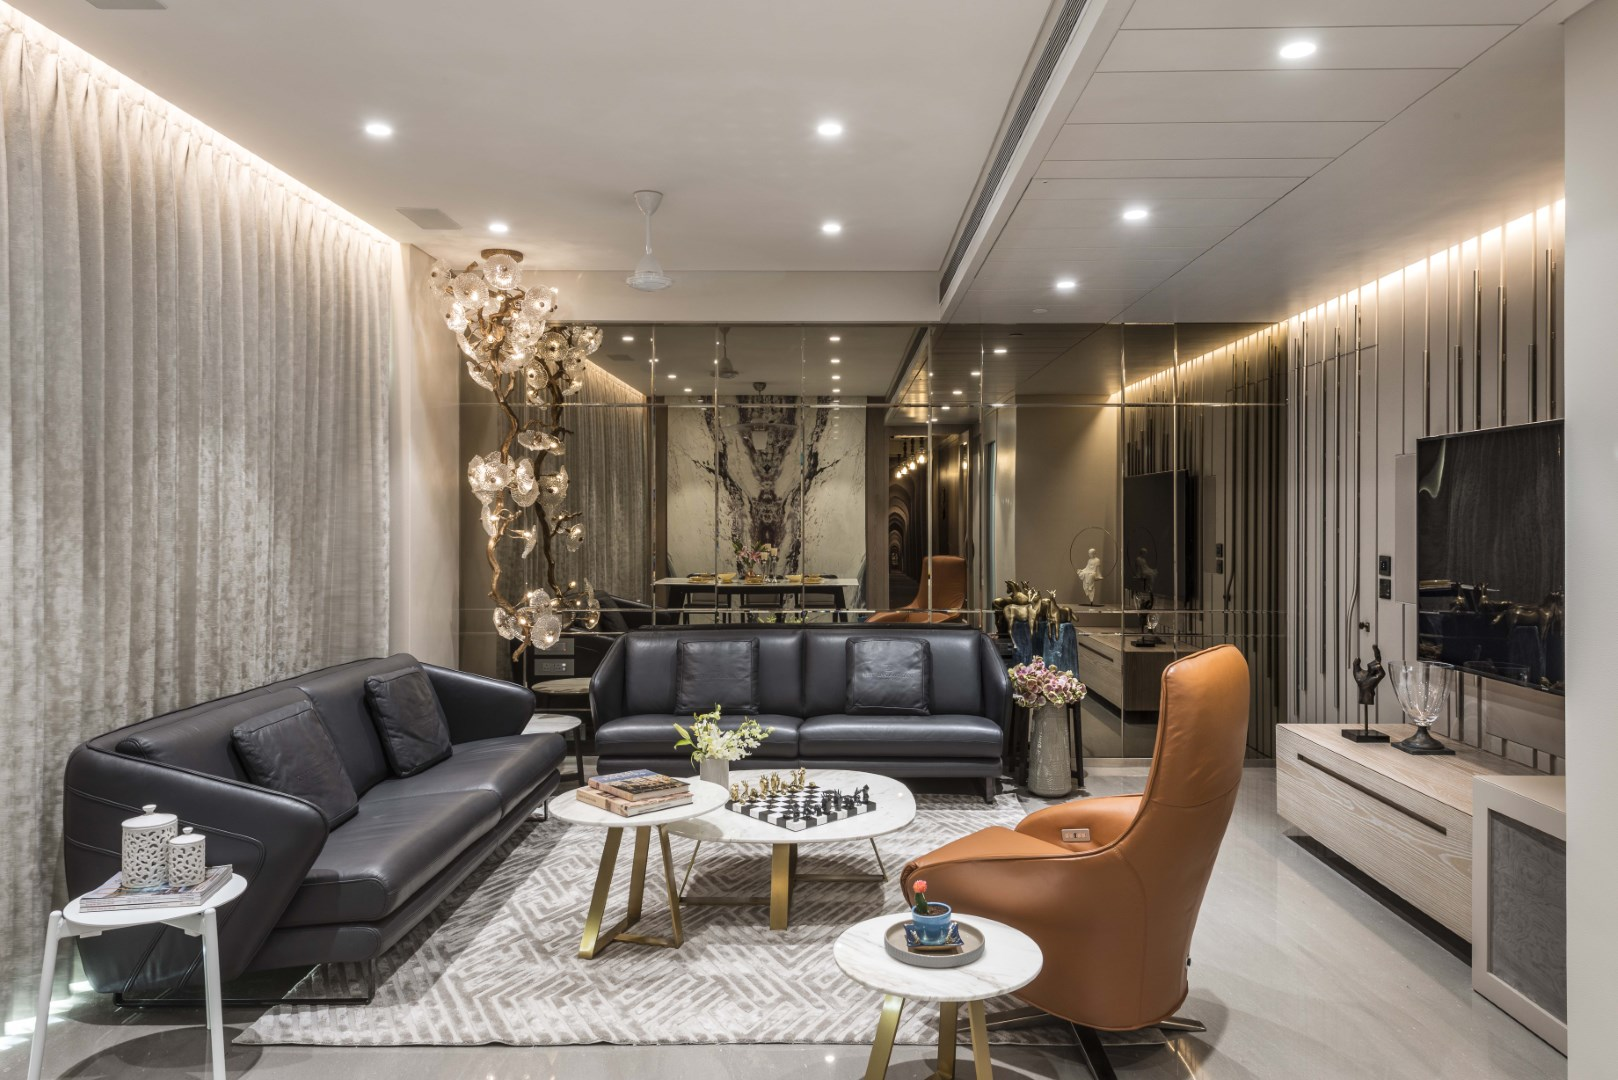 An aura of class and modern elegance permeates every nook of this beautiful and functional apartment the living room opening to terrace and the bar counter